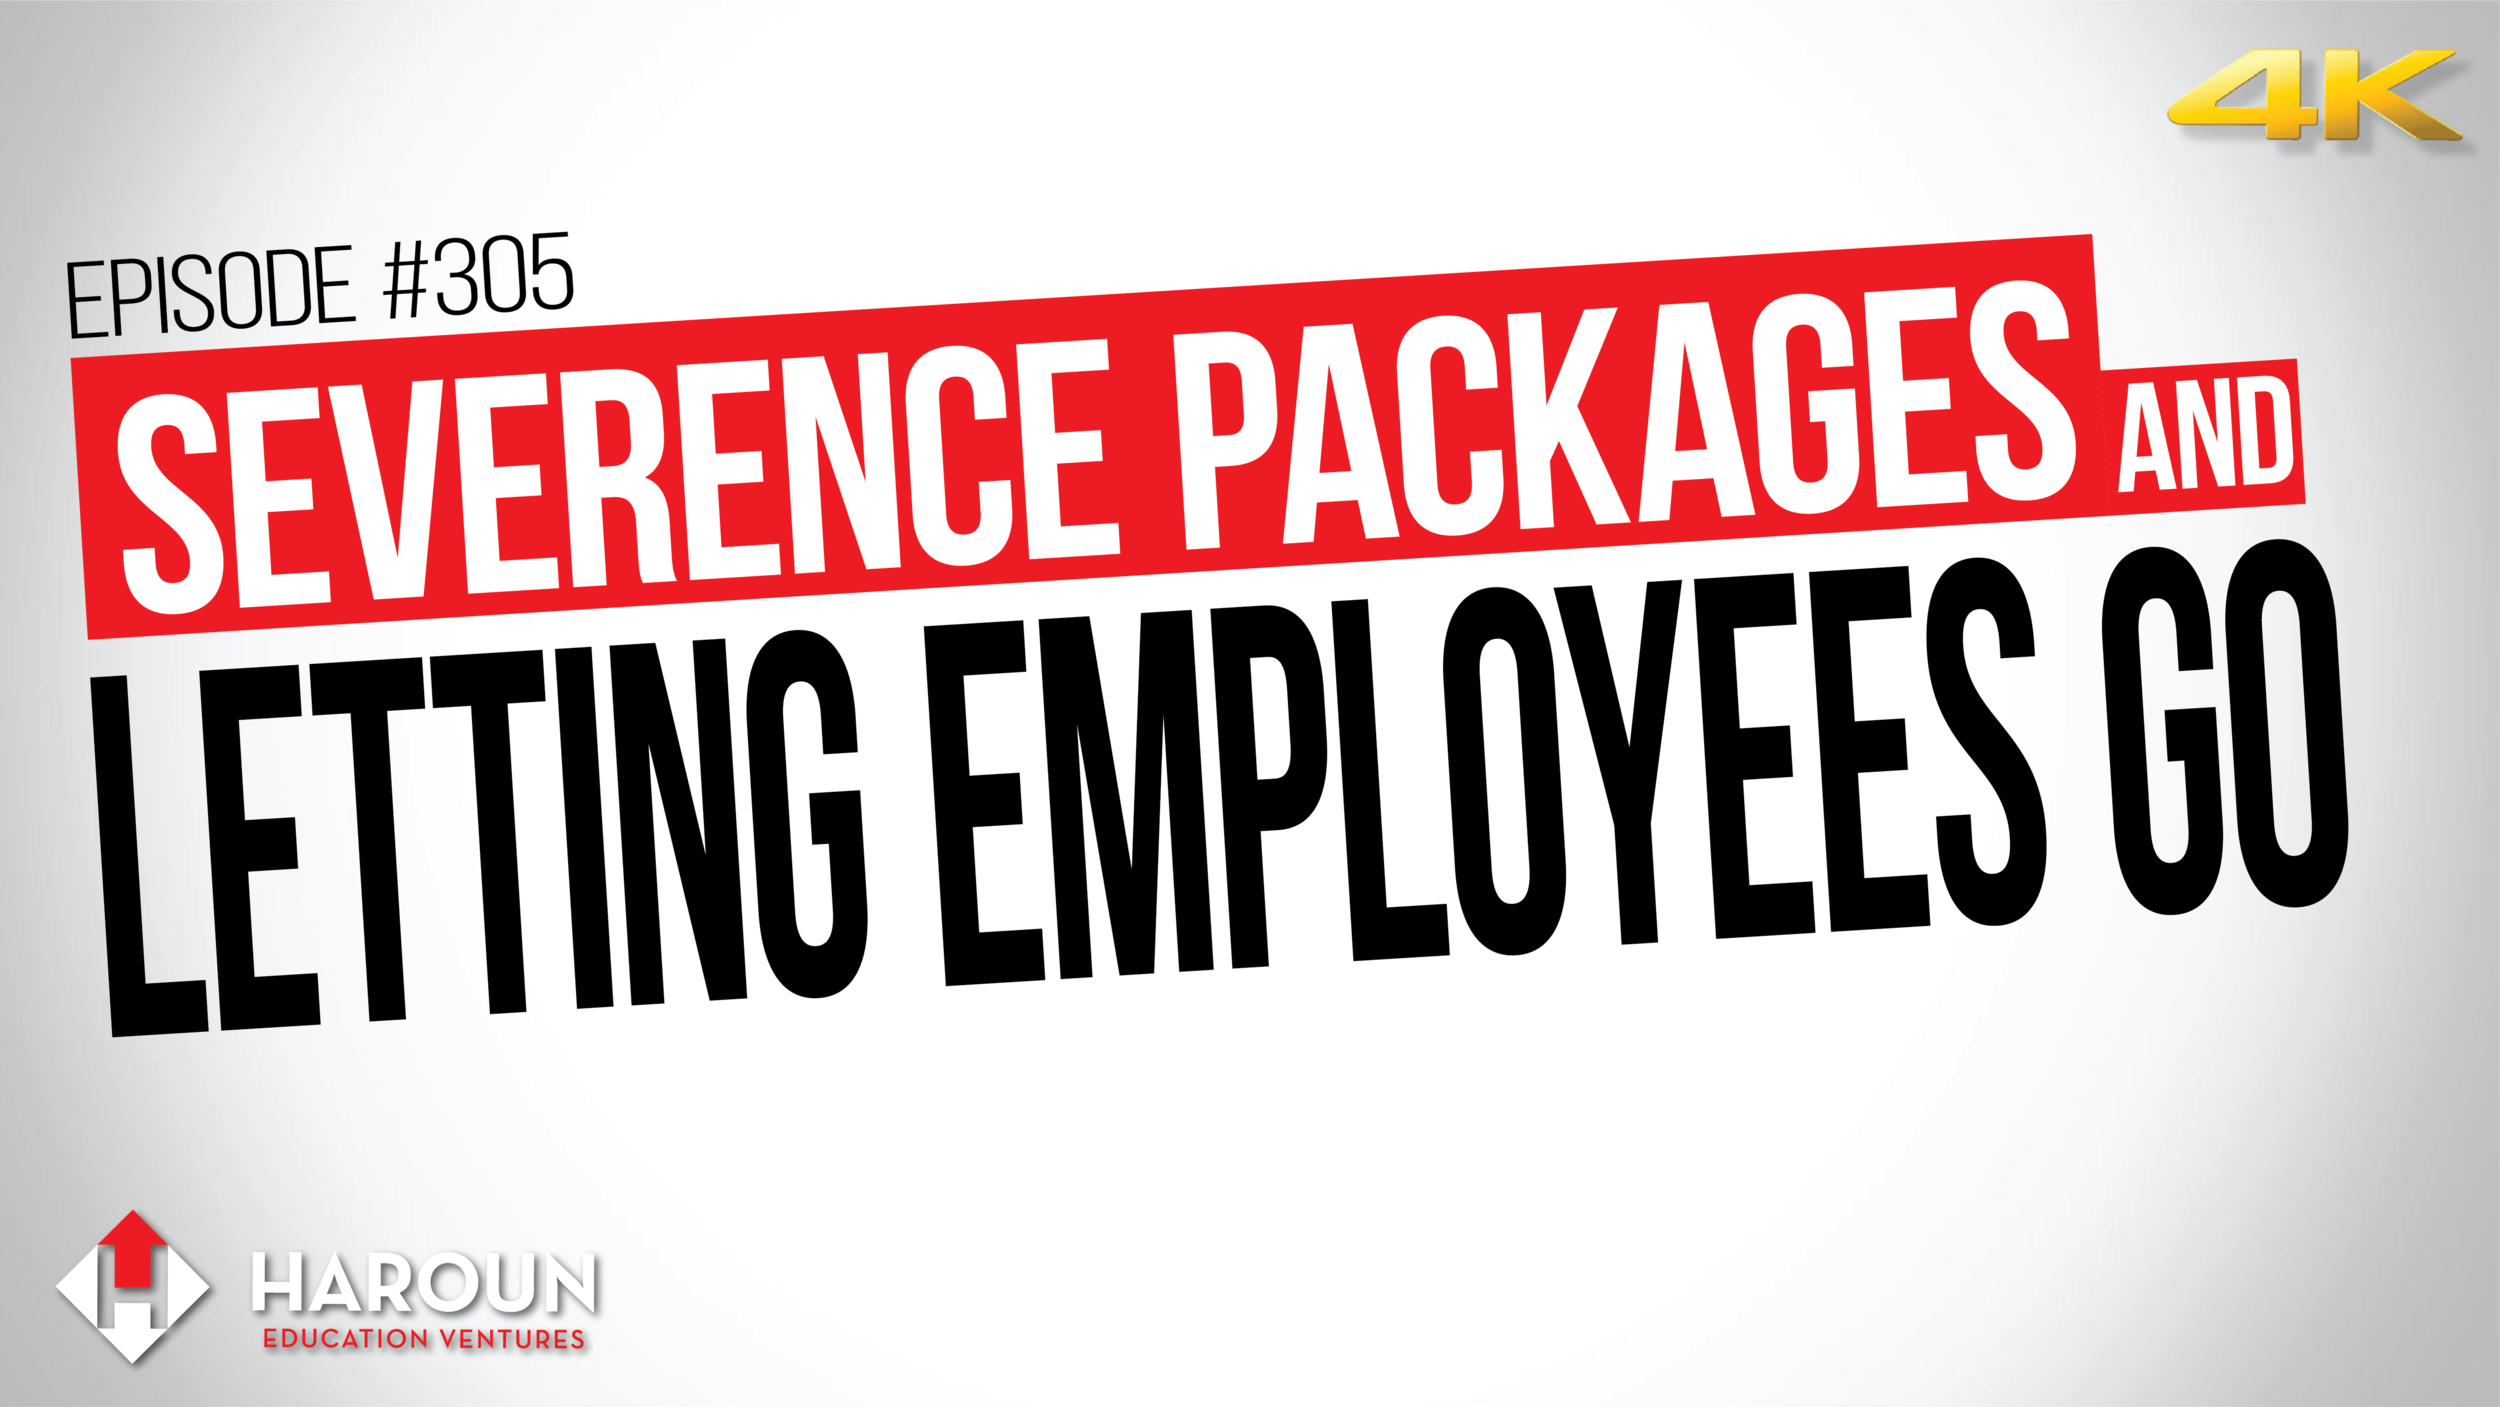 VLOG_305_6_1_2019_Severence Packages and Letting Employees Go.png